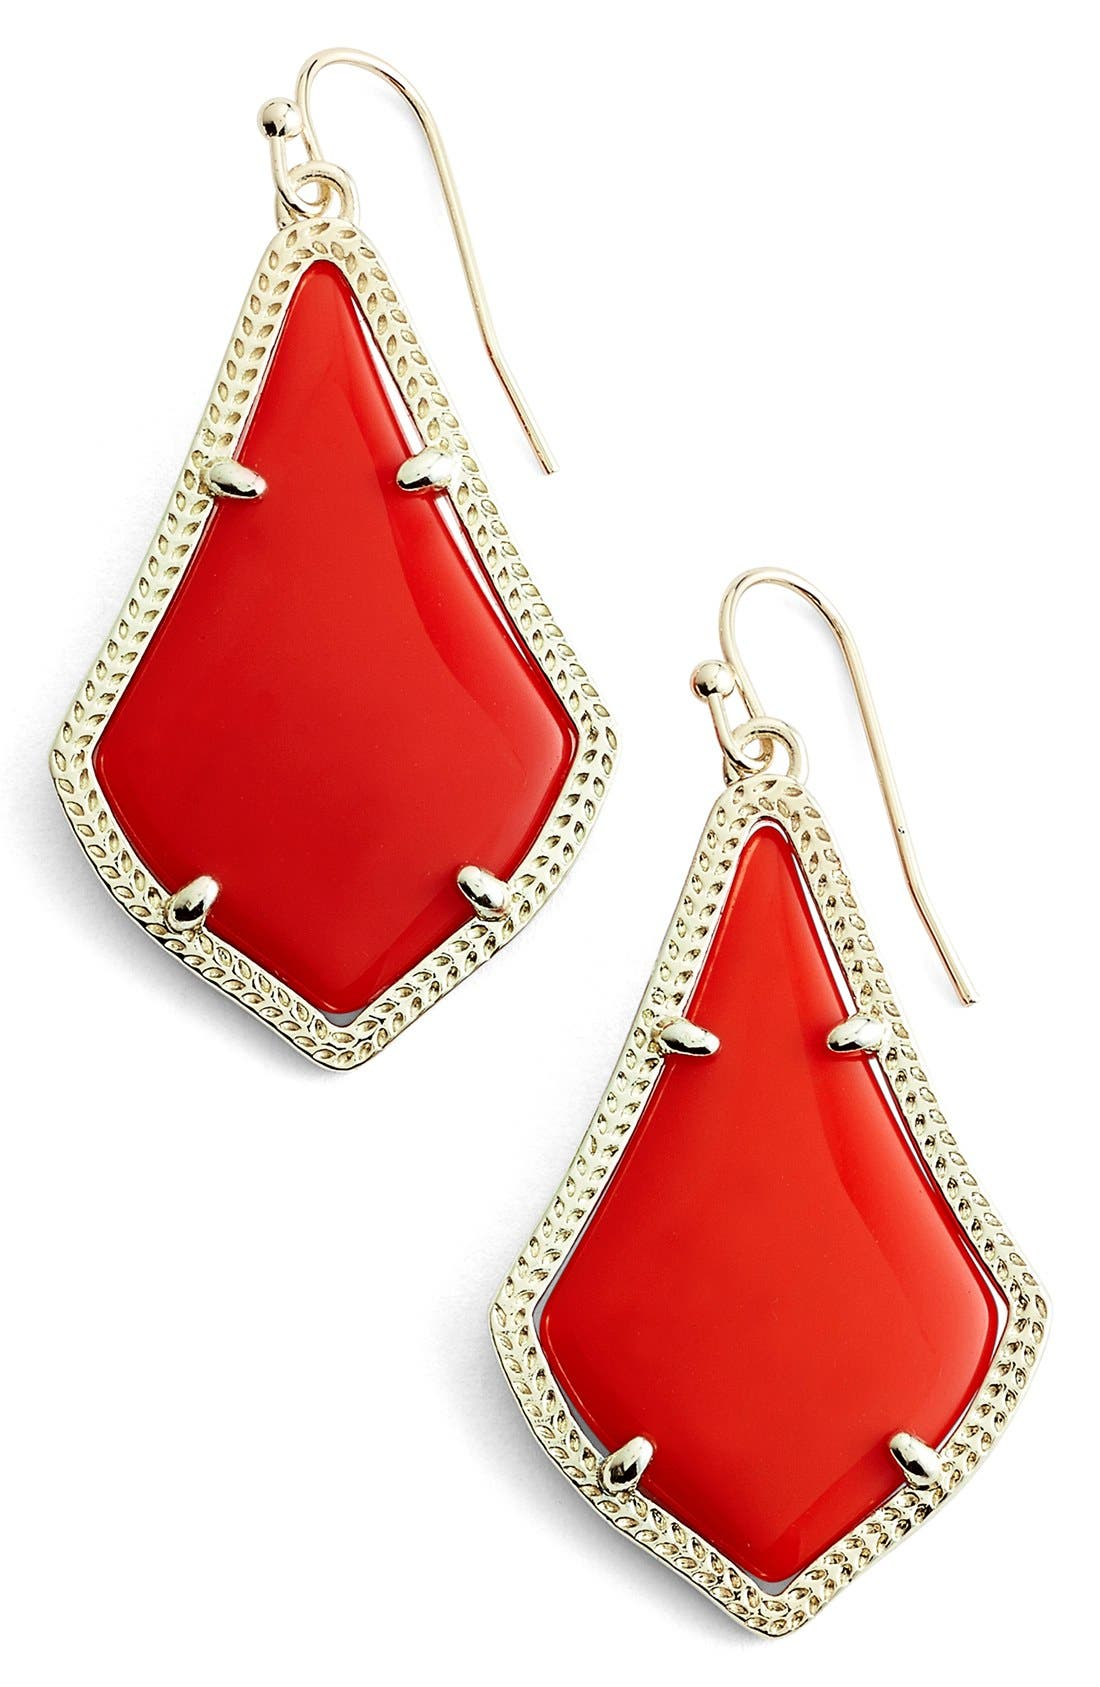 Alex Drop Earrings,                         Main,                         color, Bright Red Opaque Glass/ Gold